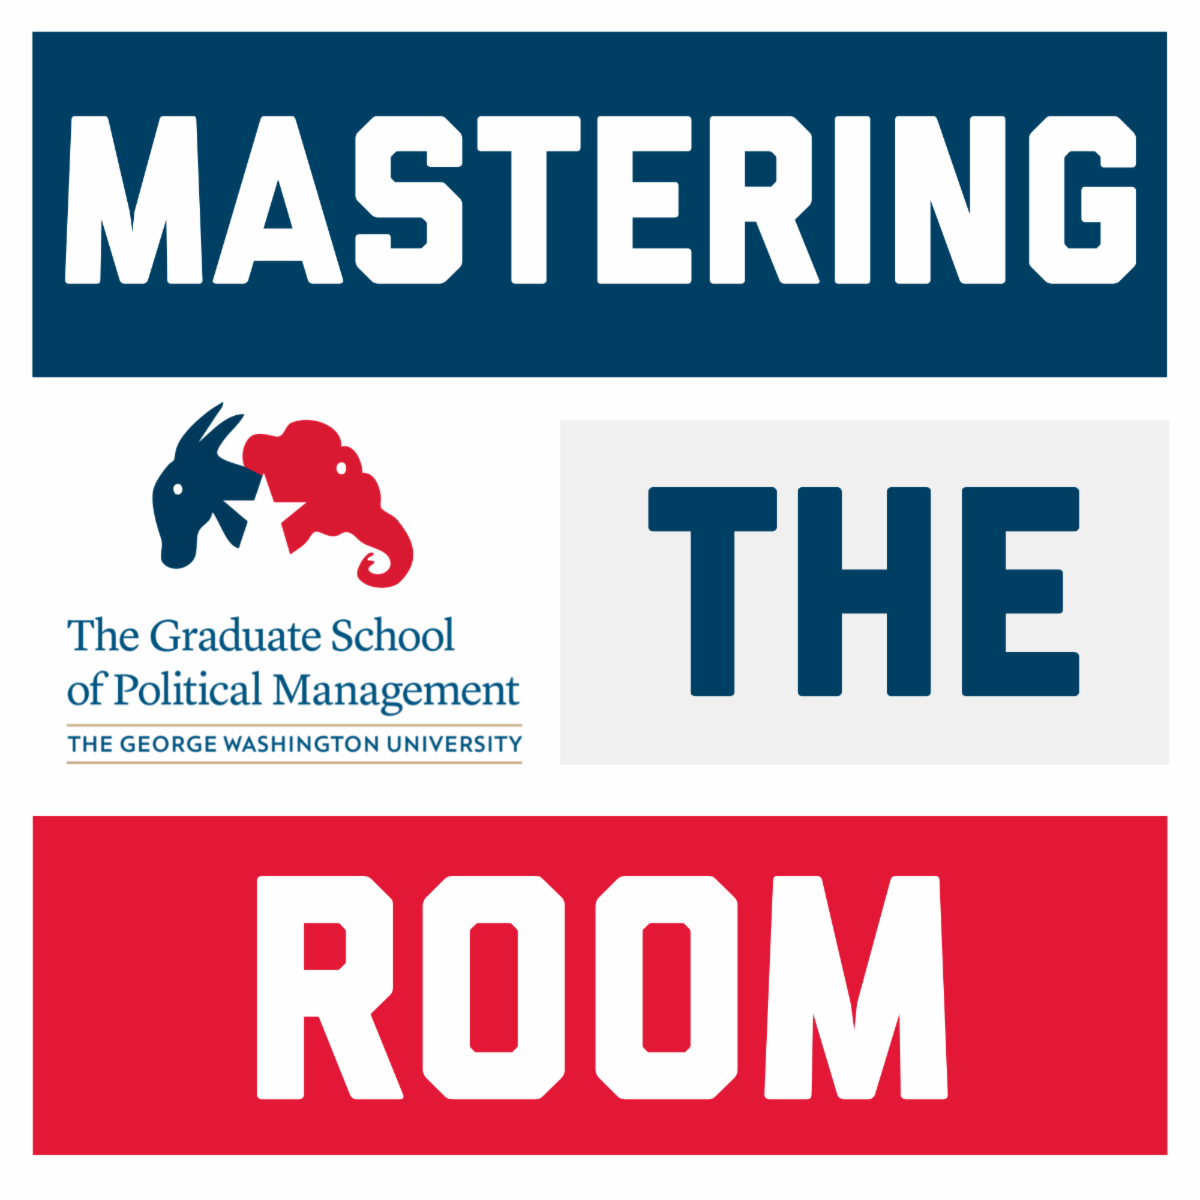 Mastering the Room